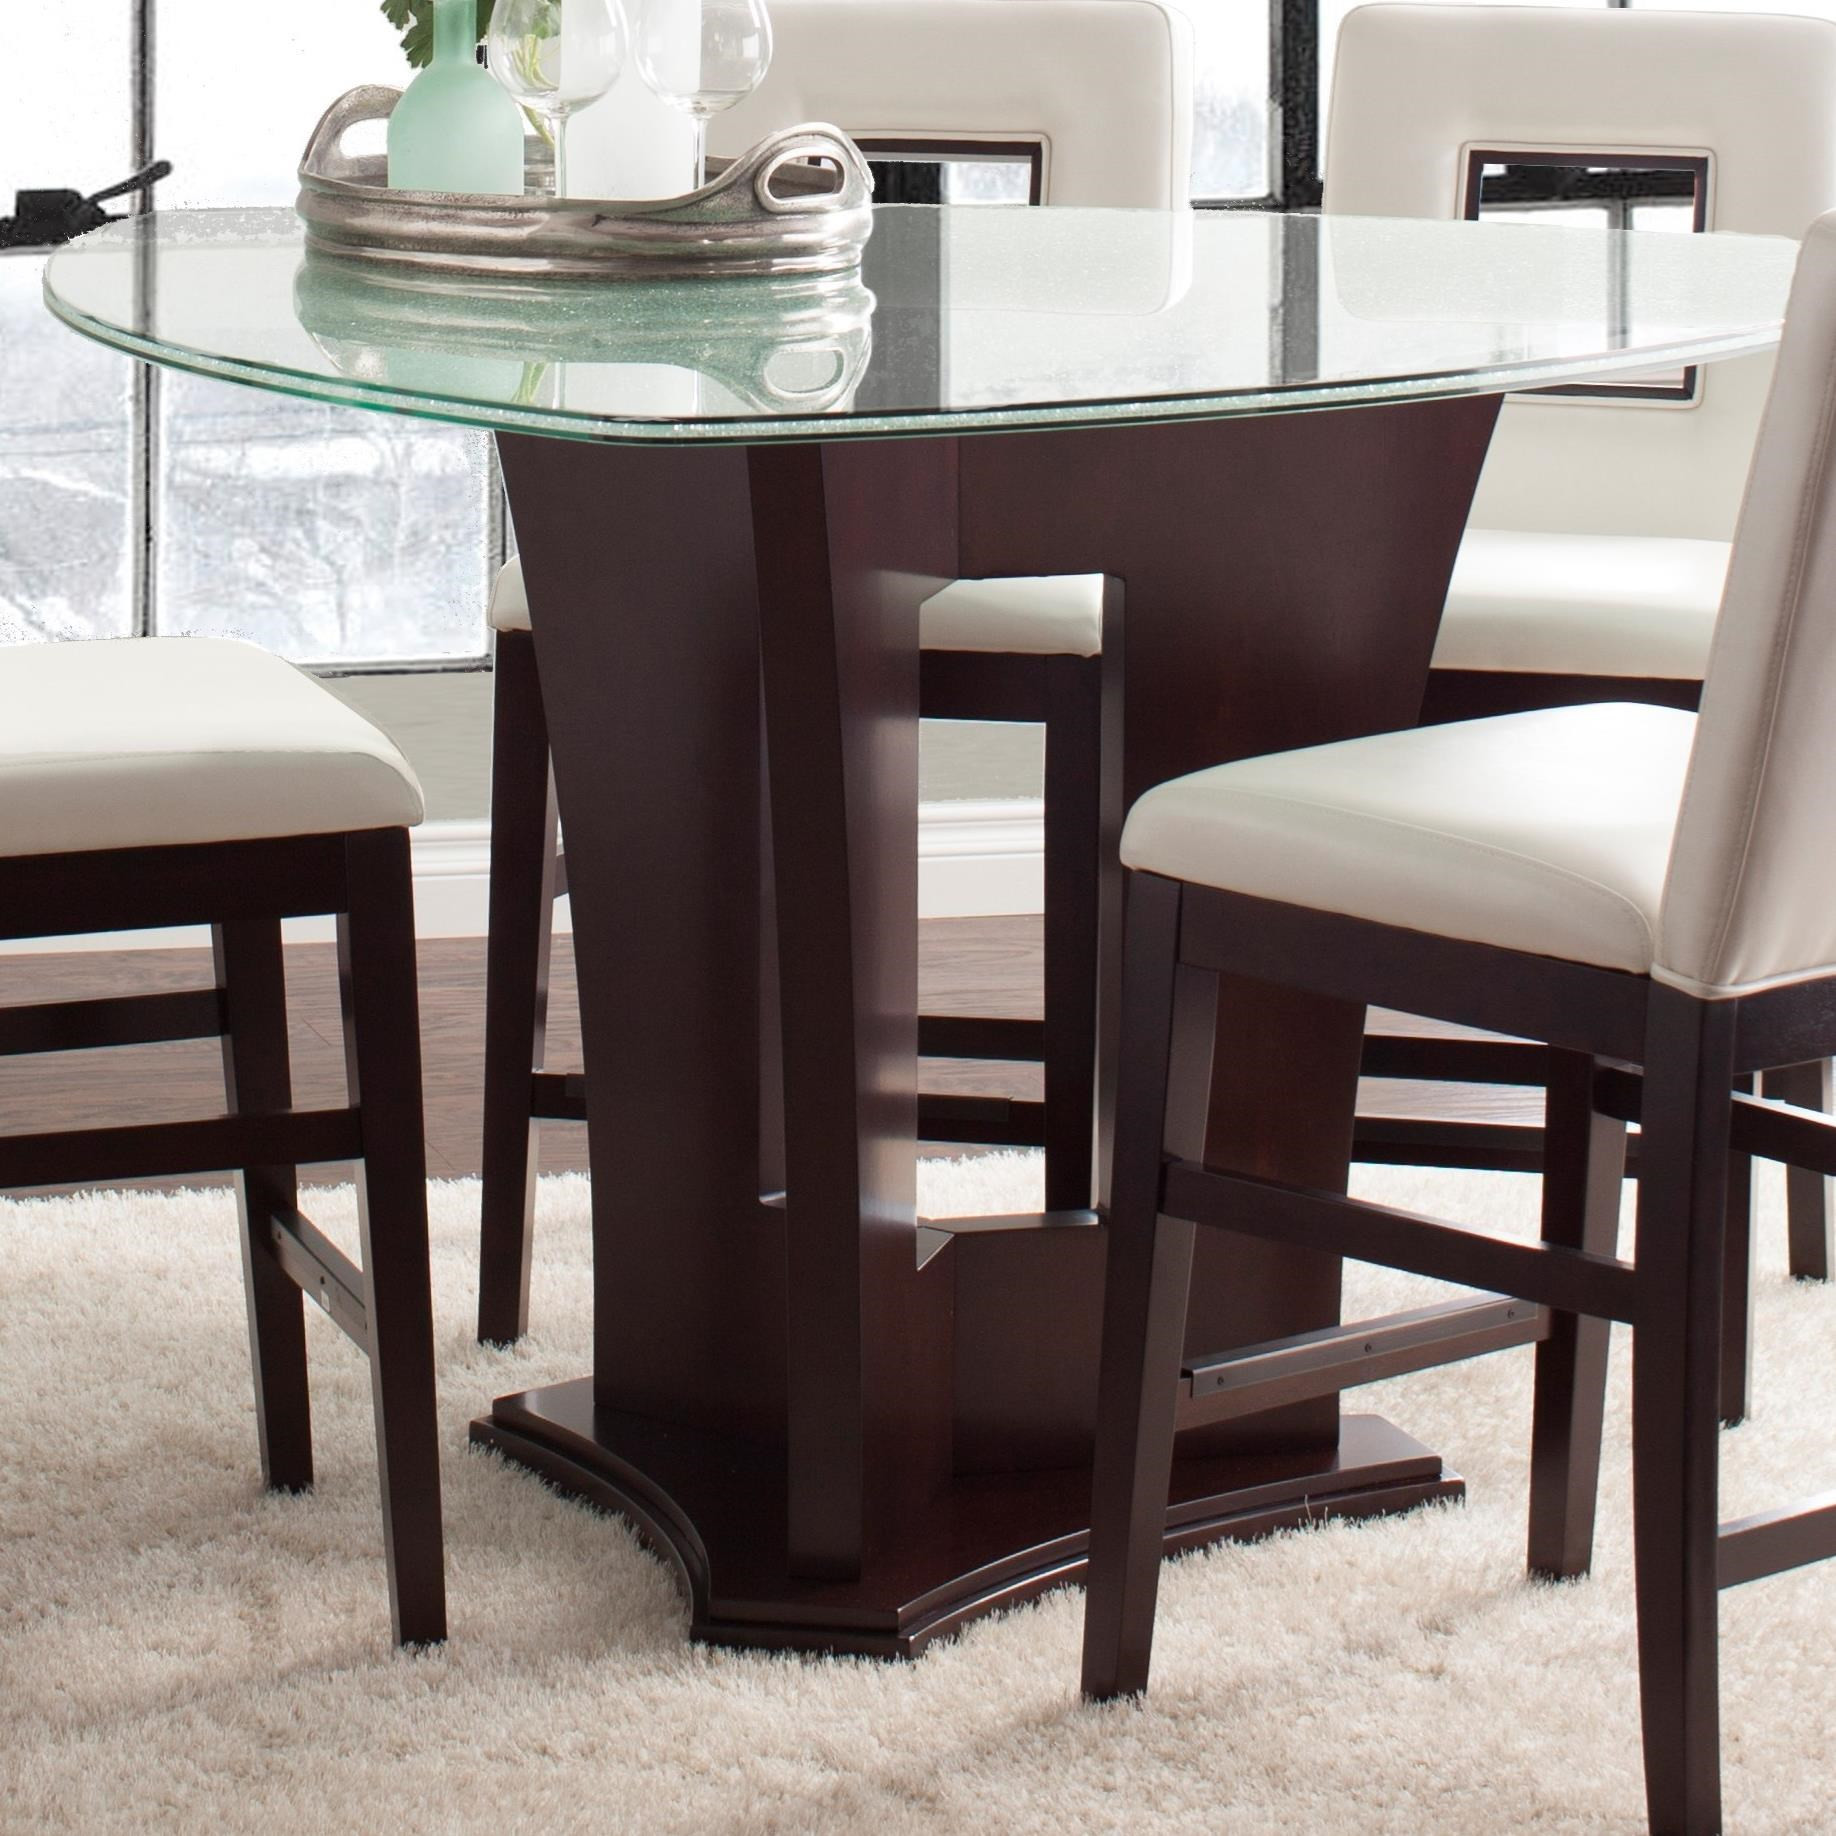 Best ideas about Dining Table Height . Save or Pin Najarian Soho Counter Height Dining Table with Crackled Now.